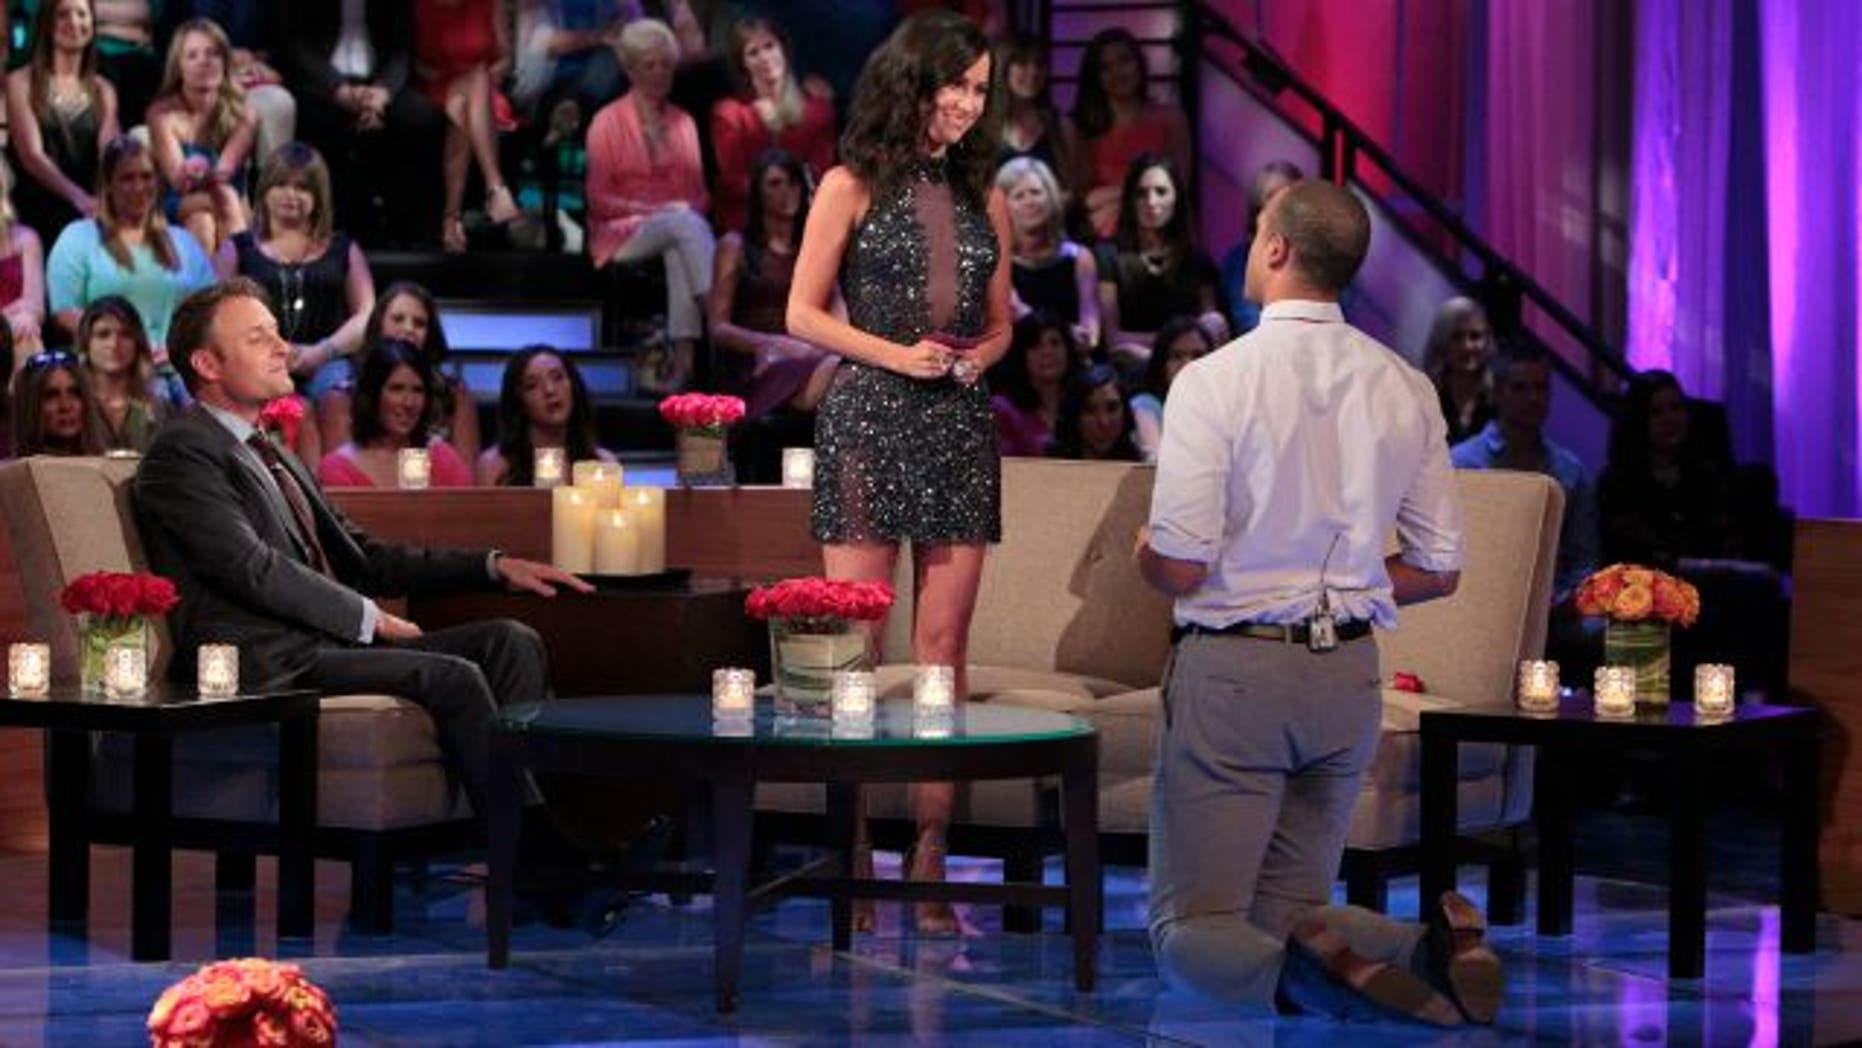 """THE BACHELORETTE - """"The Bachelorette: The Men Tell All"""" - It's an exciting, unpredictable reunion viewers won't want to miss as the most memorable bachelors from this season - including Ben H., Ben Z., Chris """"Cupcake,"""" Ian and Jared -- return to confront each other and Kaitlyn one last time on national television to dish the dirt and tell their side of the story, on """"The Bachelorette: The Men Tell All,"""" MONDAY, JULY 20 (8:00-10:01 p.m., ET), on the ABC Television Network. (ABC/Rick Rowell) CHRIS HARRISON, KAITLYN BRISTOWE, IAN"""